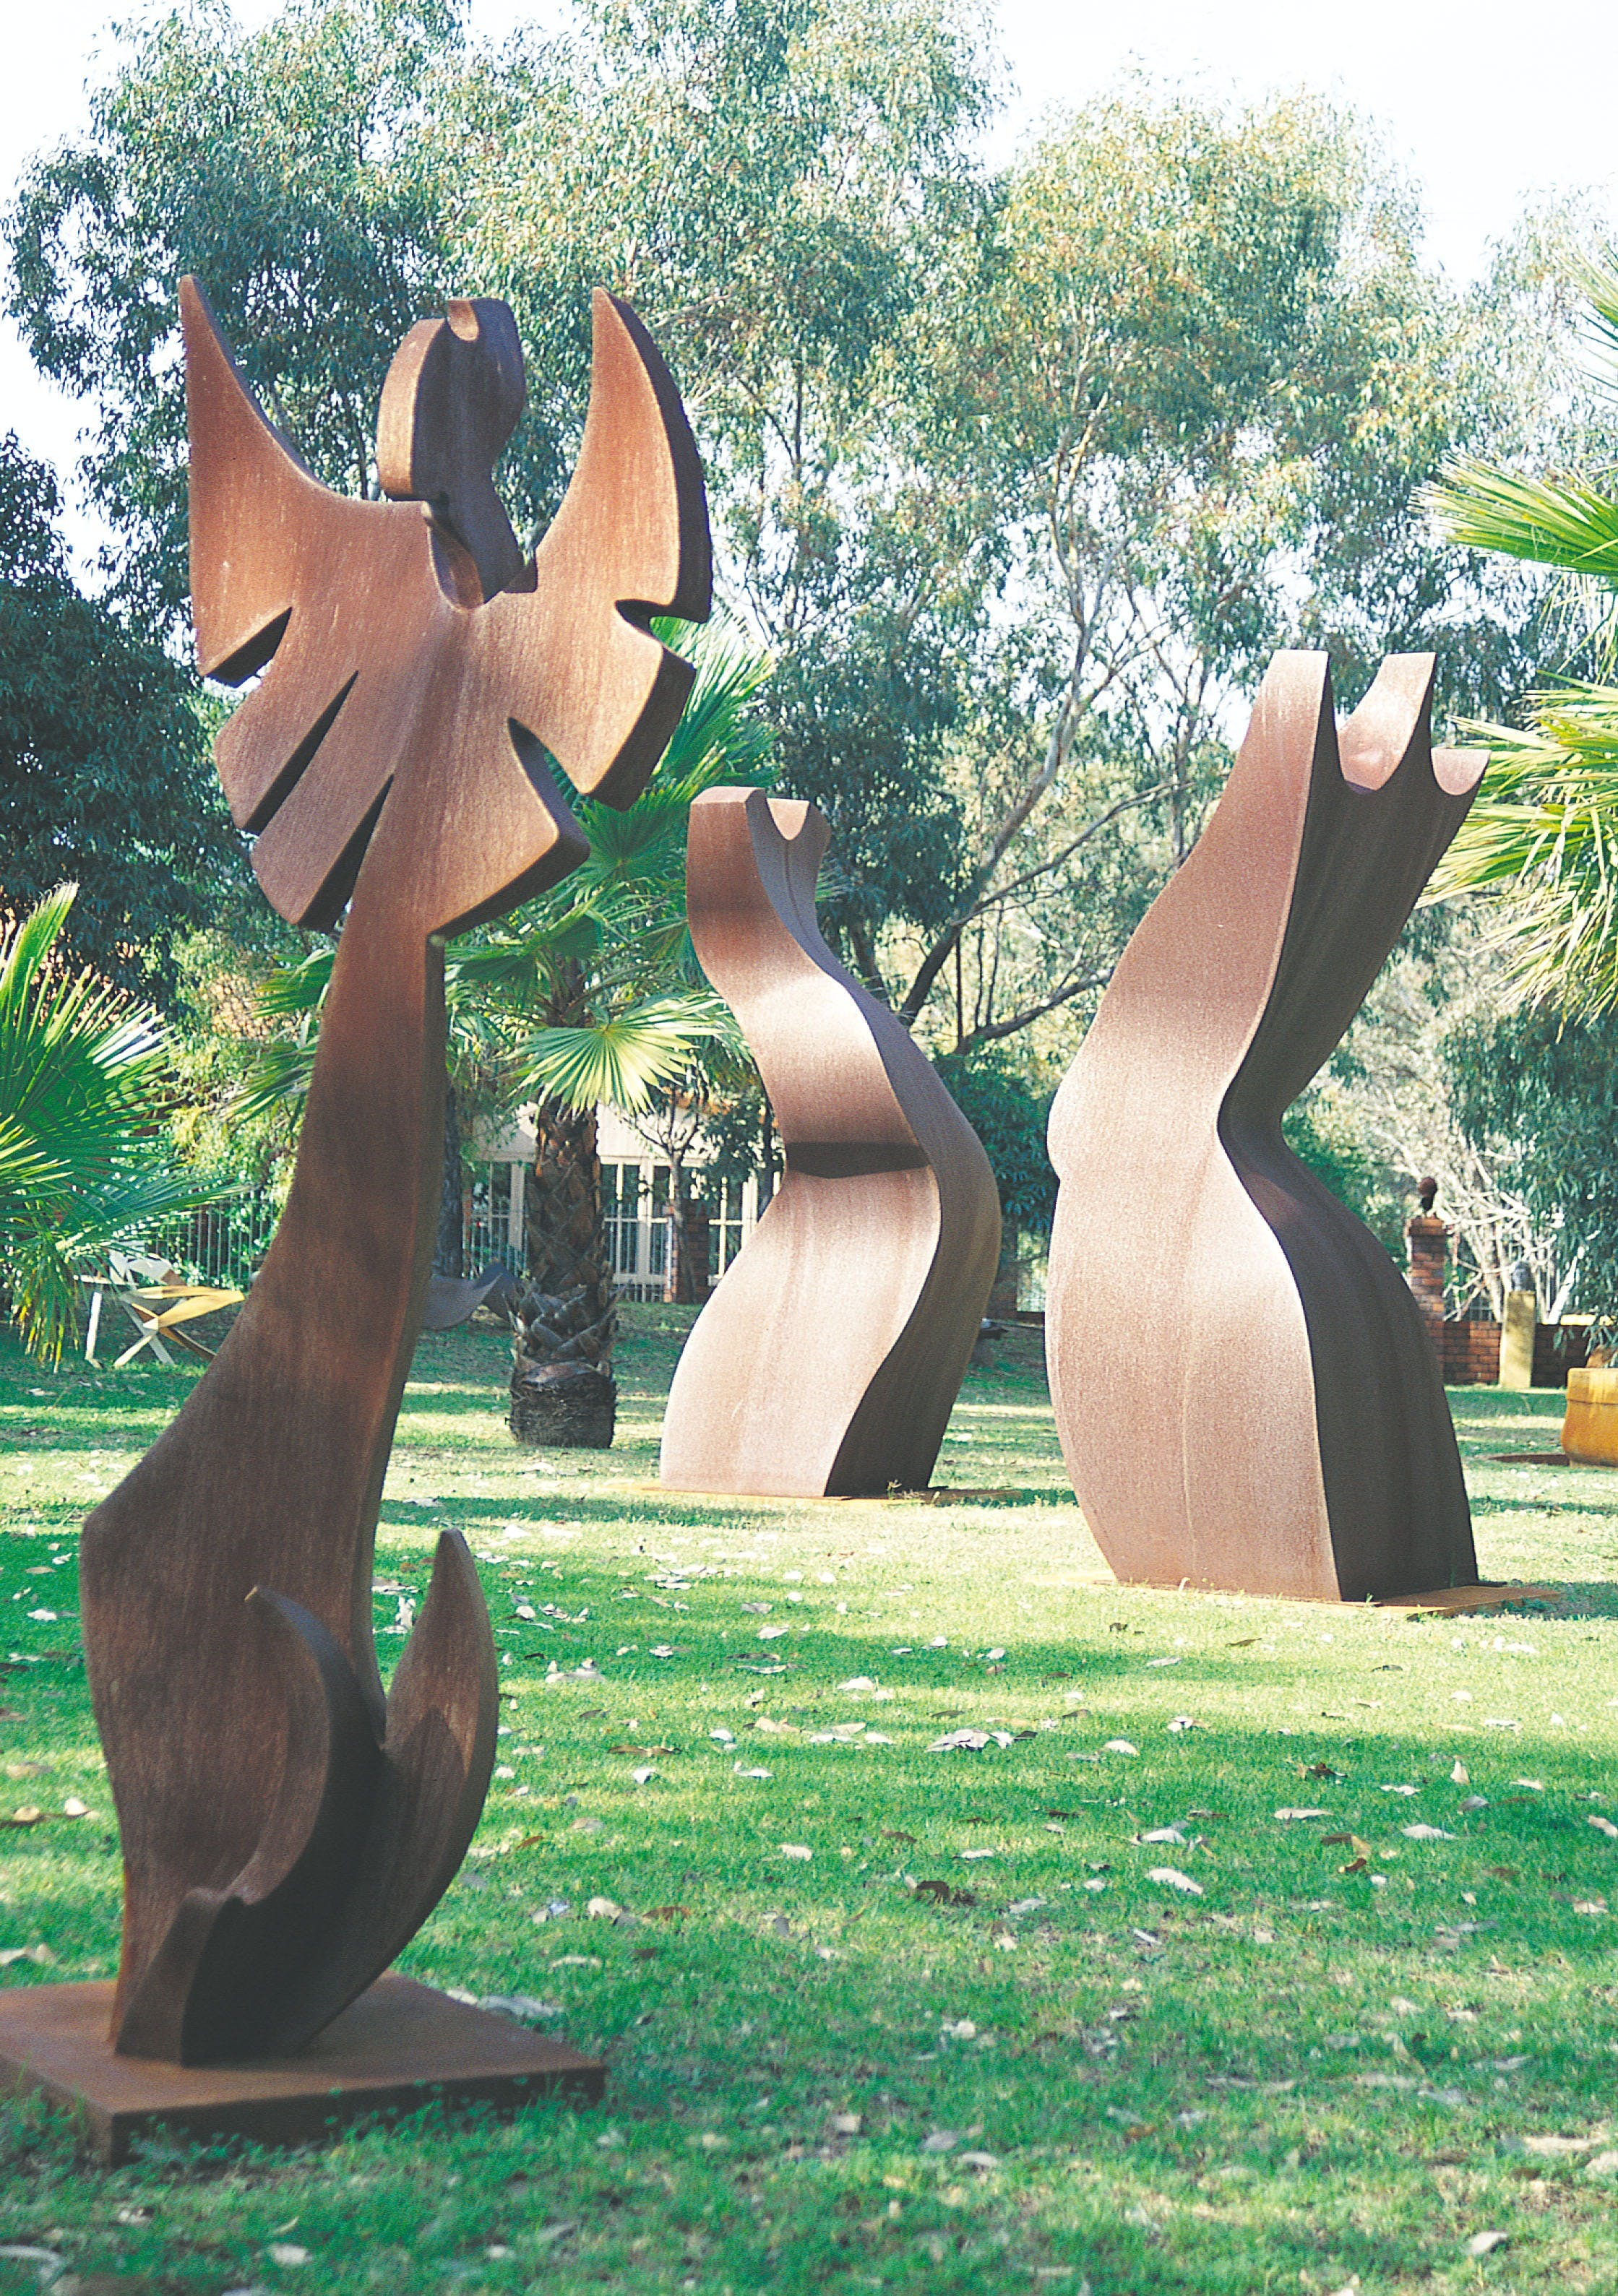 Swan Valley Wine and Art, Off The Beaten Track Trail, Swan Valley, Western Australia